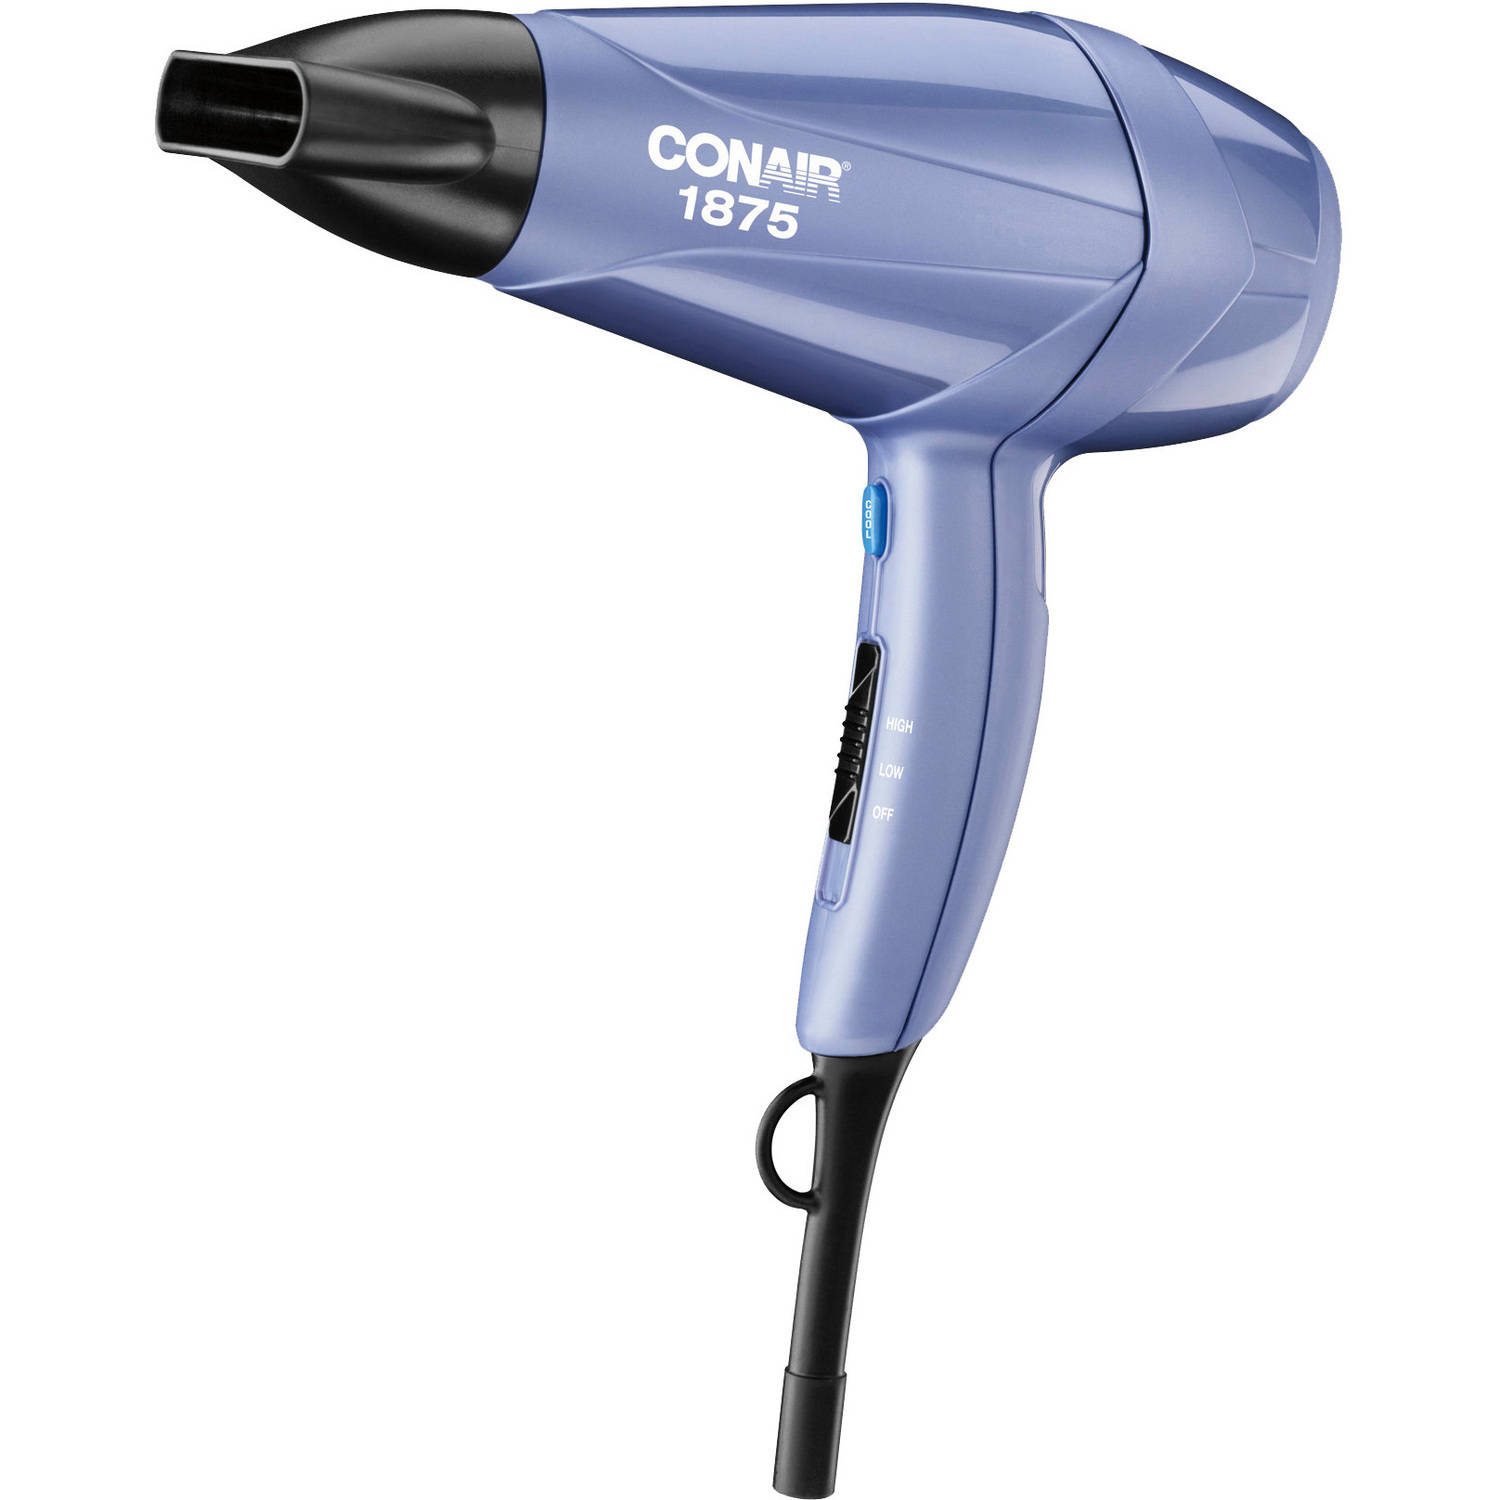 conair blow dryer conair 1875 watt mid size styler hair dryer walmart 12172